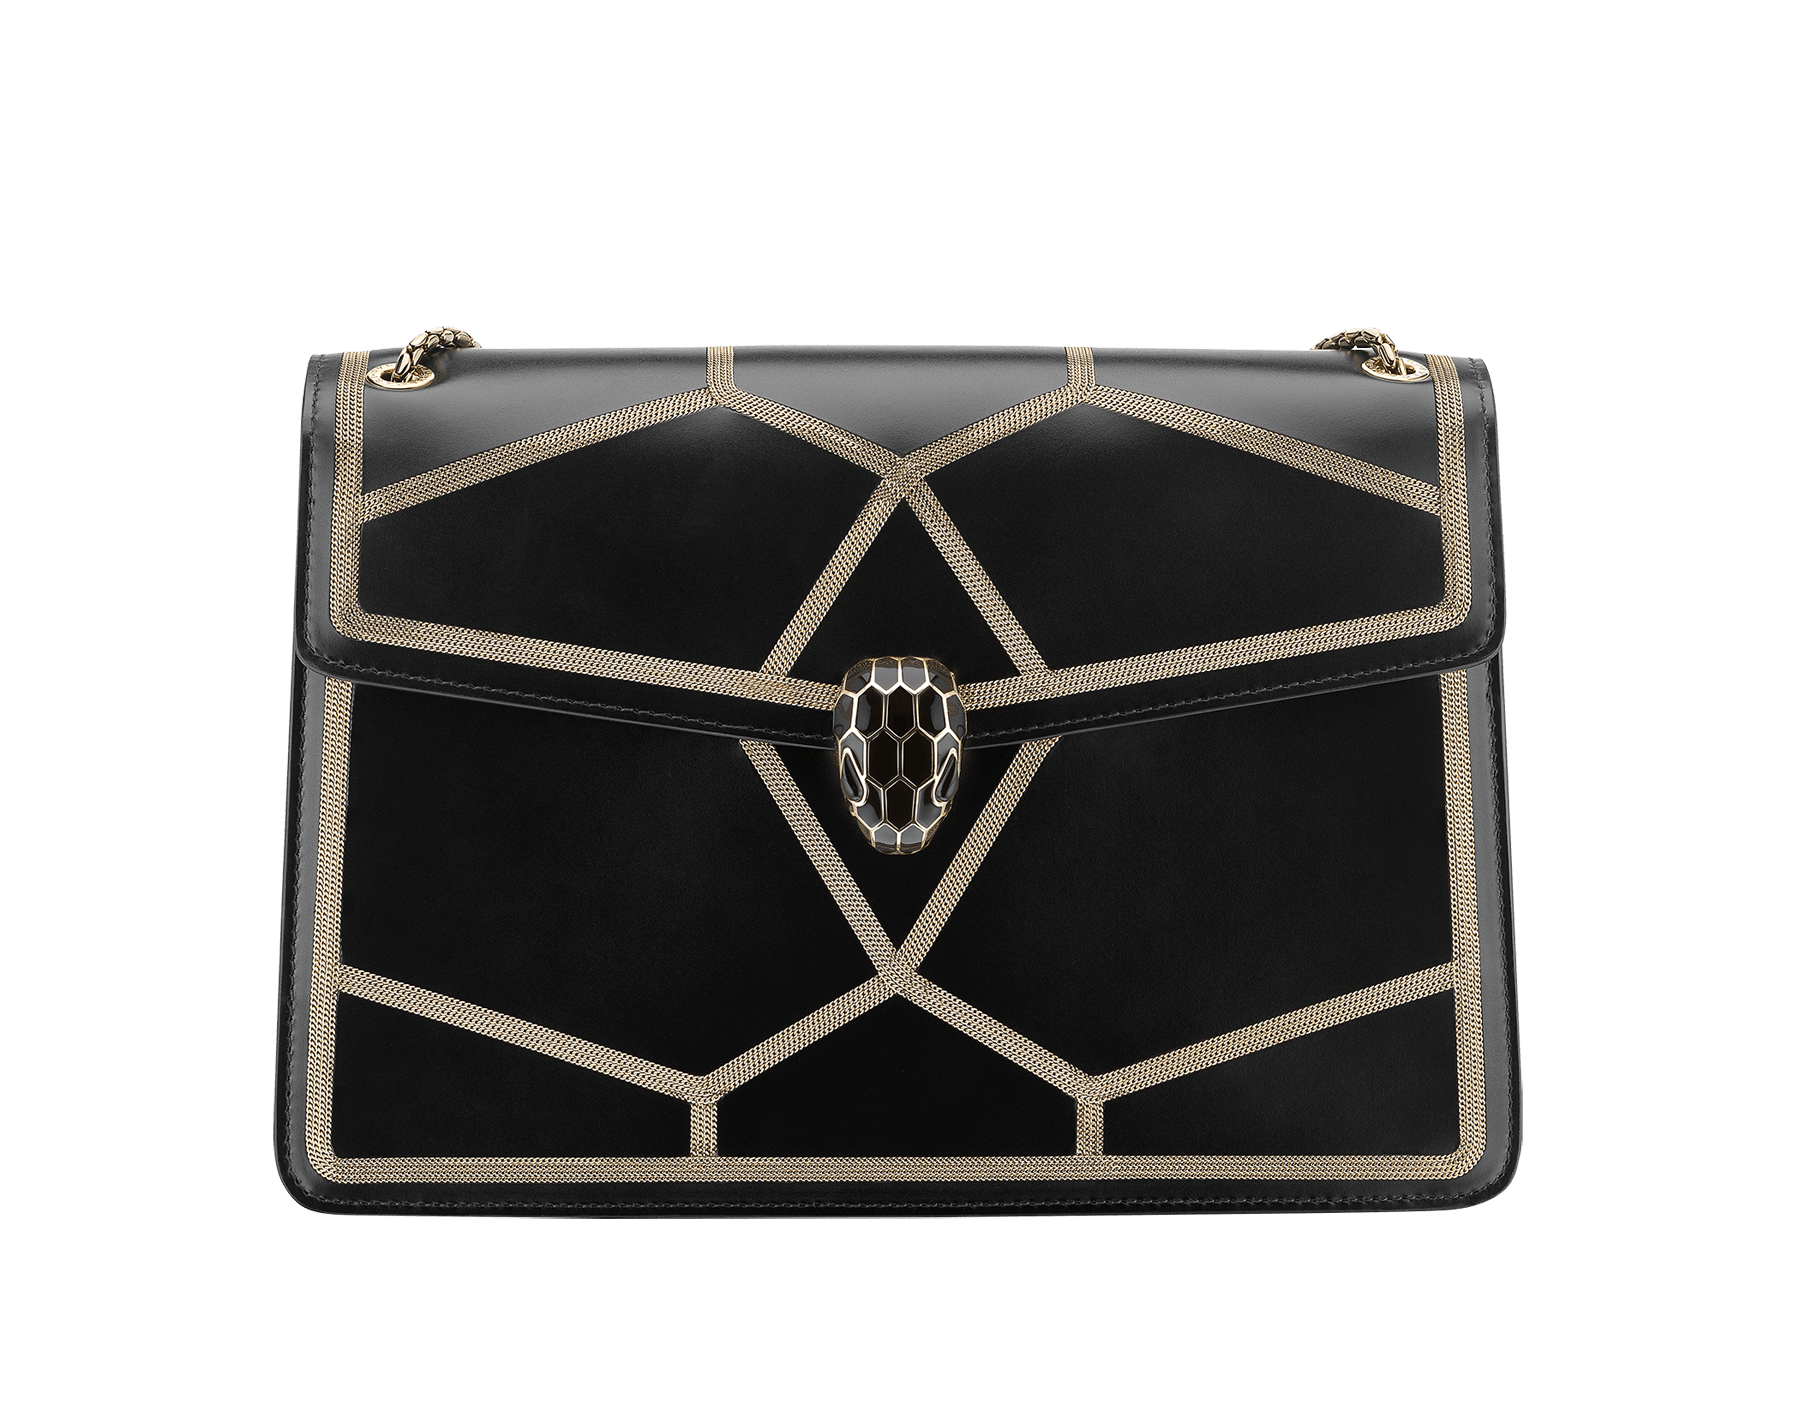 """Serpenti Forever"" shoulder bag in black calf leather and Million Chain frame body and black calf leather sides. Iconic snake head closure in light gold-plated brass enriched with black enamel and black onyx eyes. 288925 image 1"